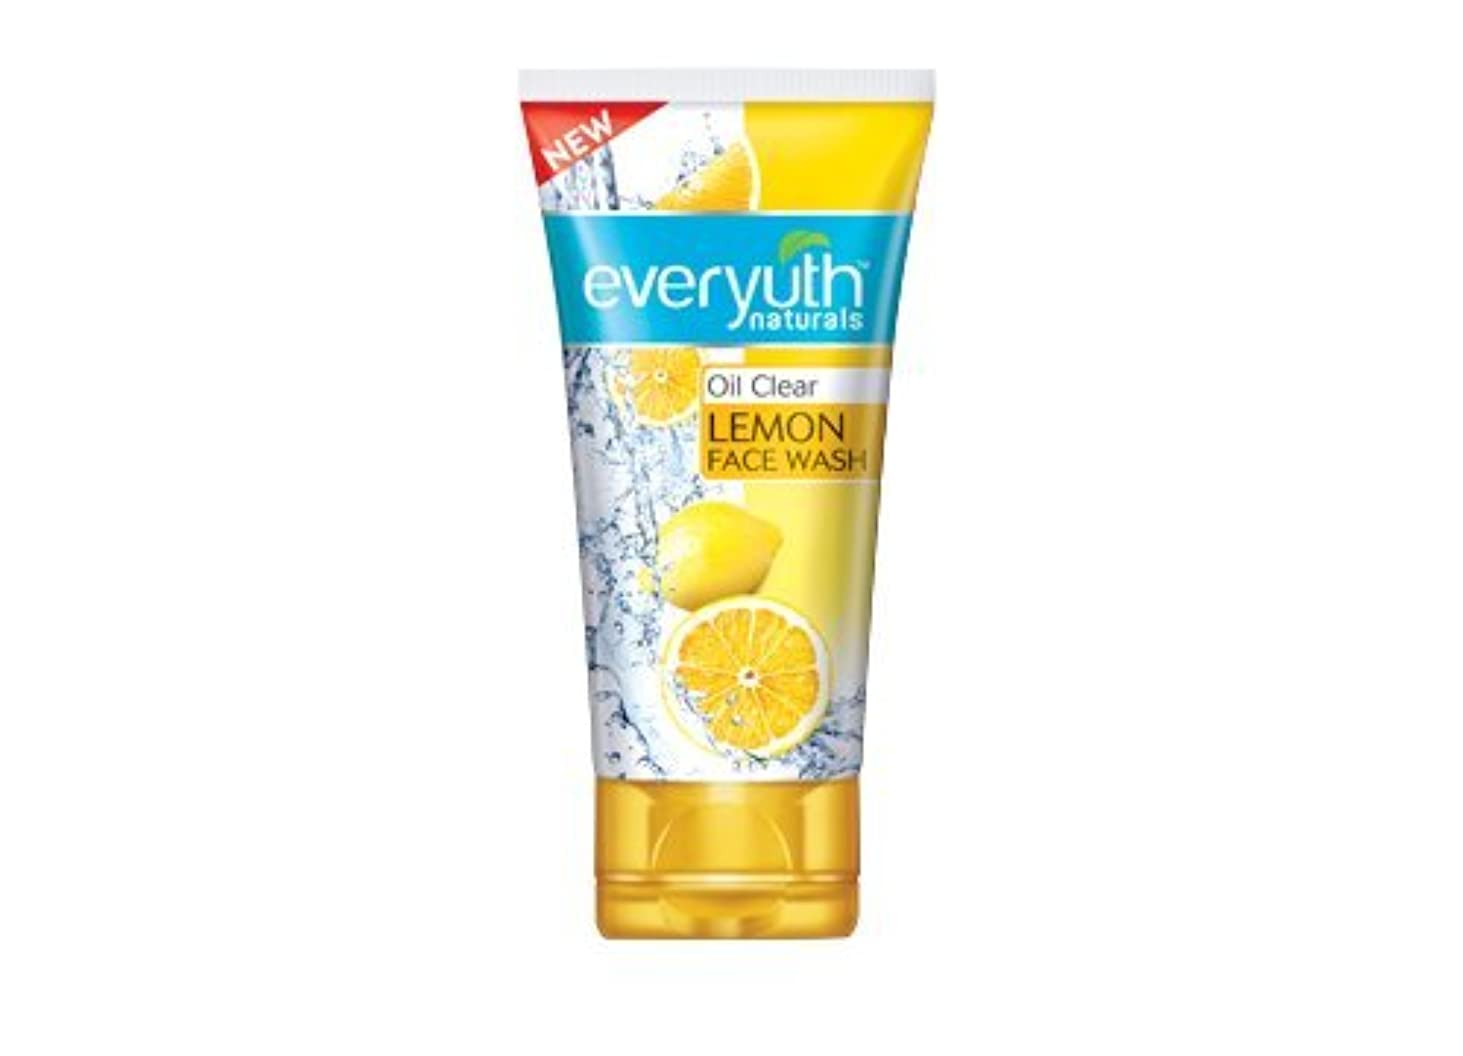 マガジン運命彼らはEveryuth Naturals Oil Clear Lemon Face Wash 50Gm (1 Pack)